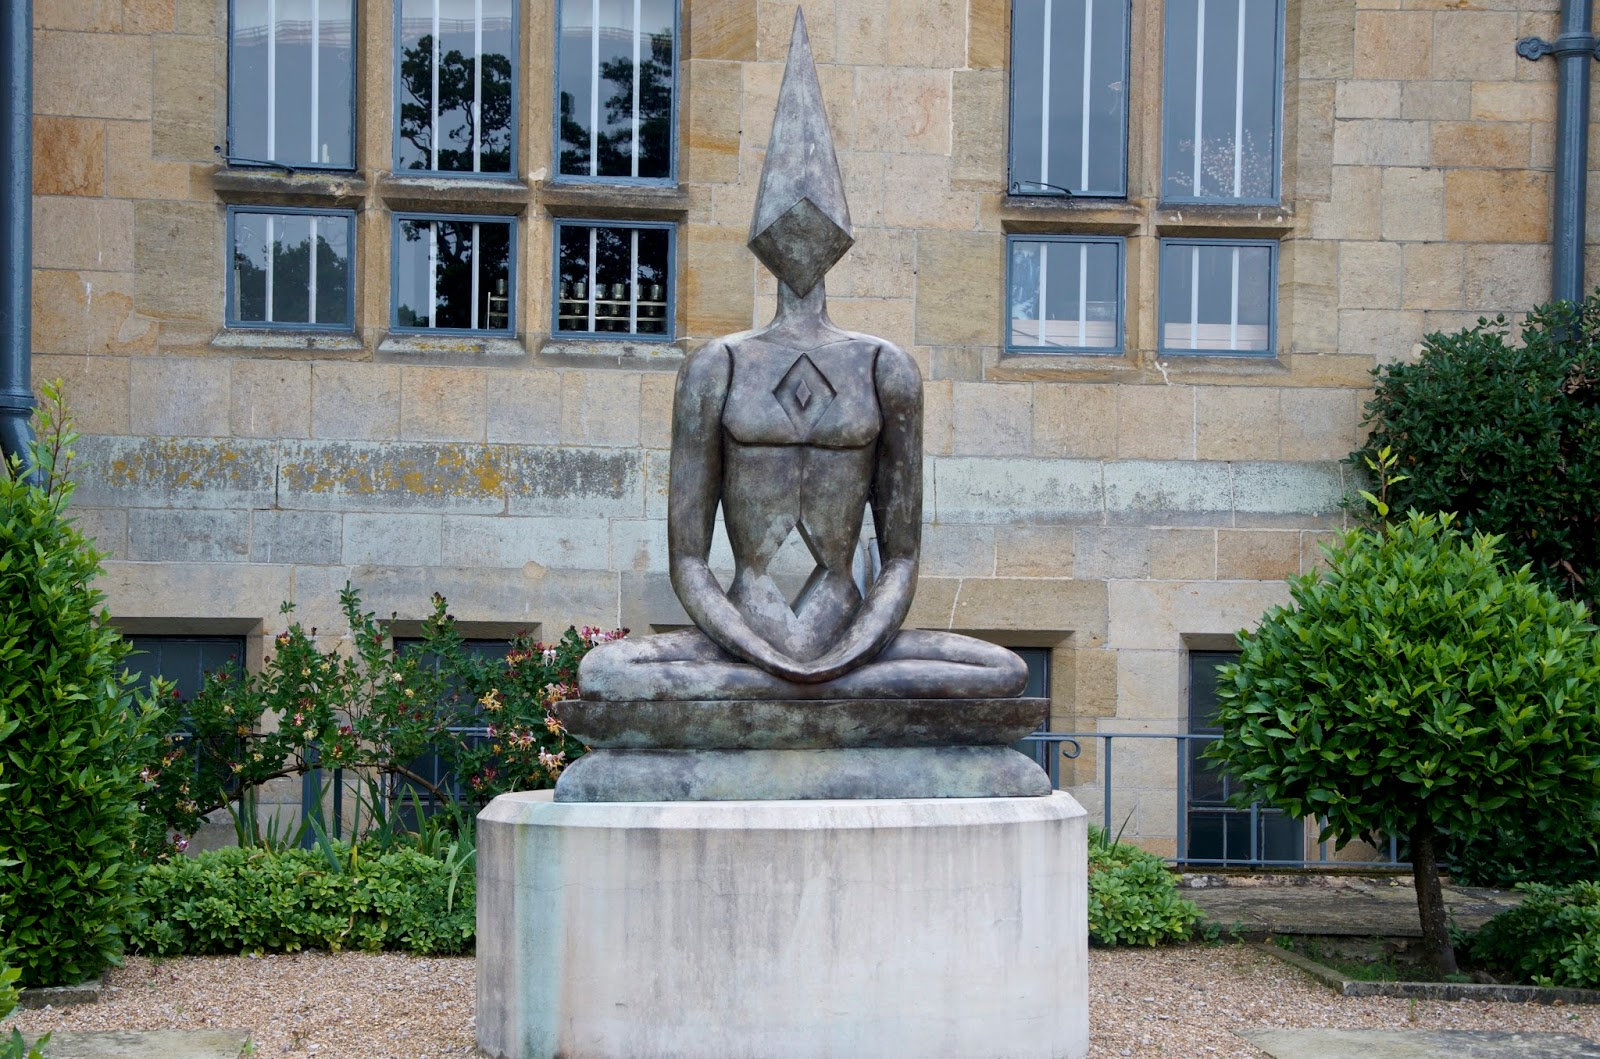 The Meditator Sculpture